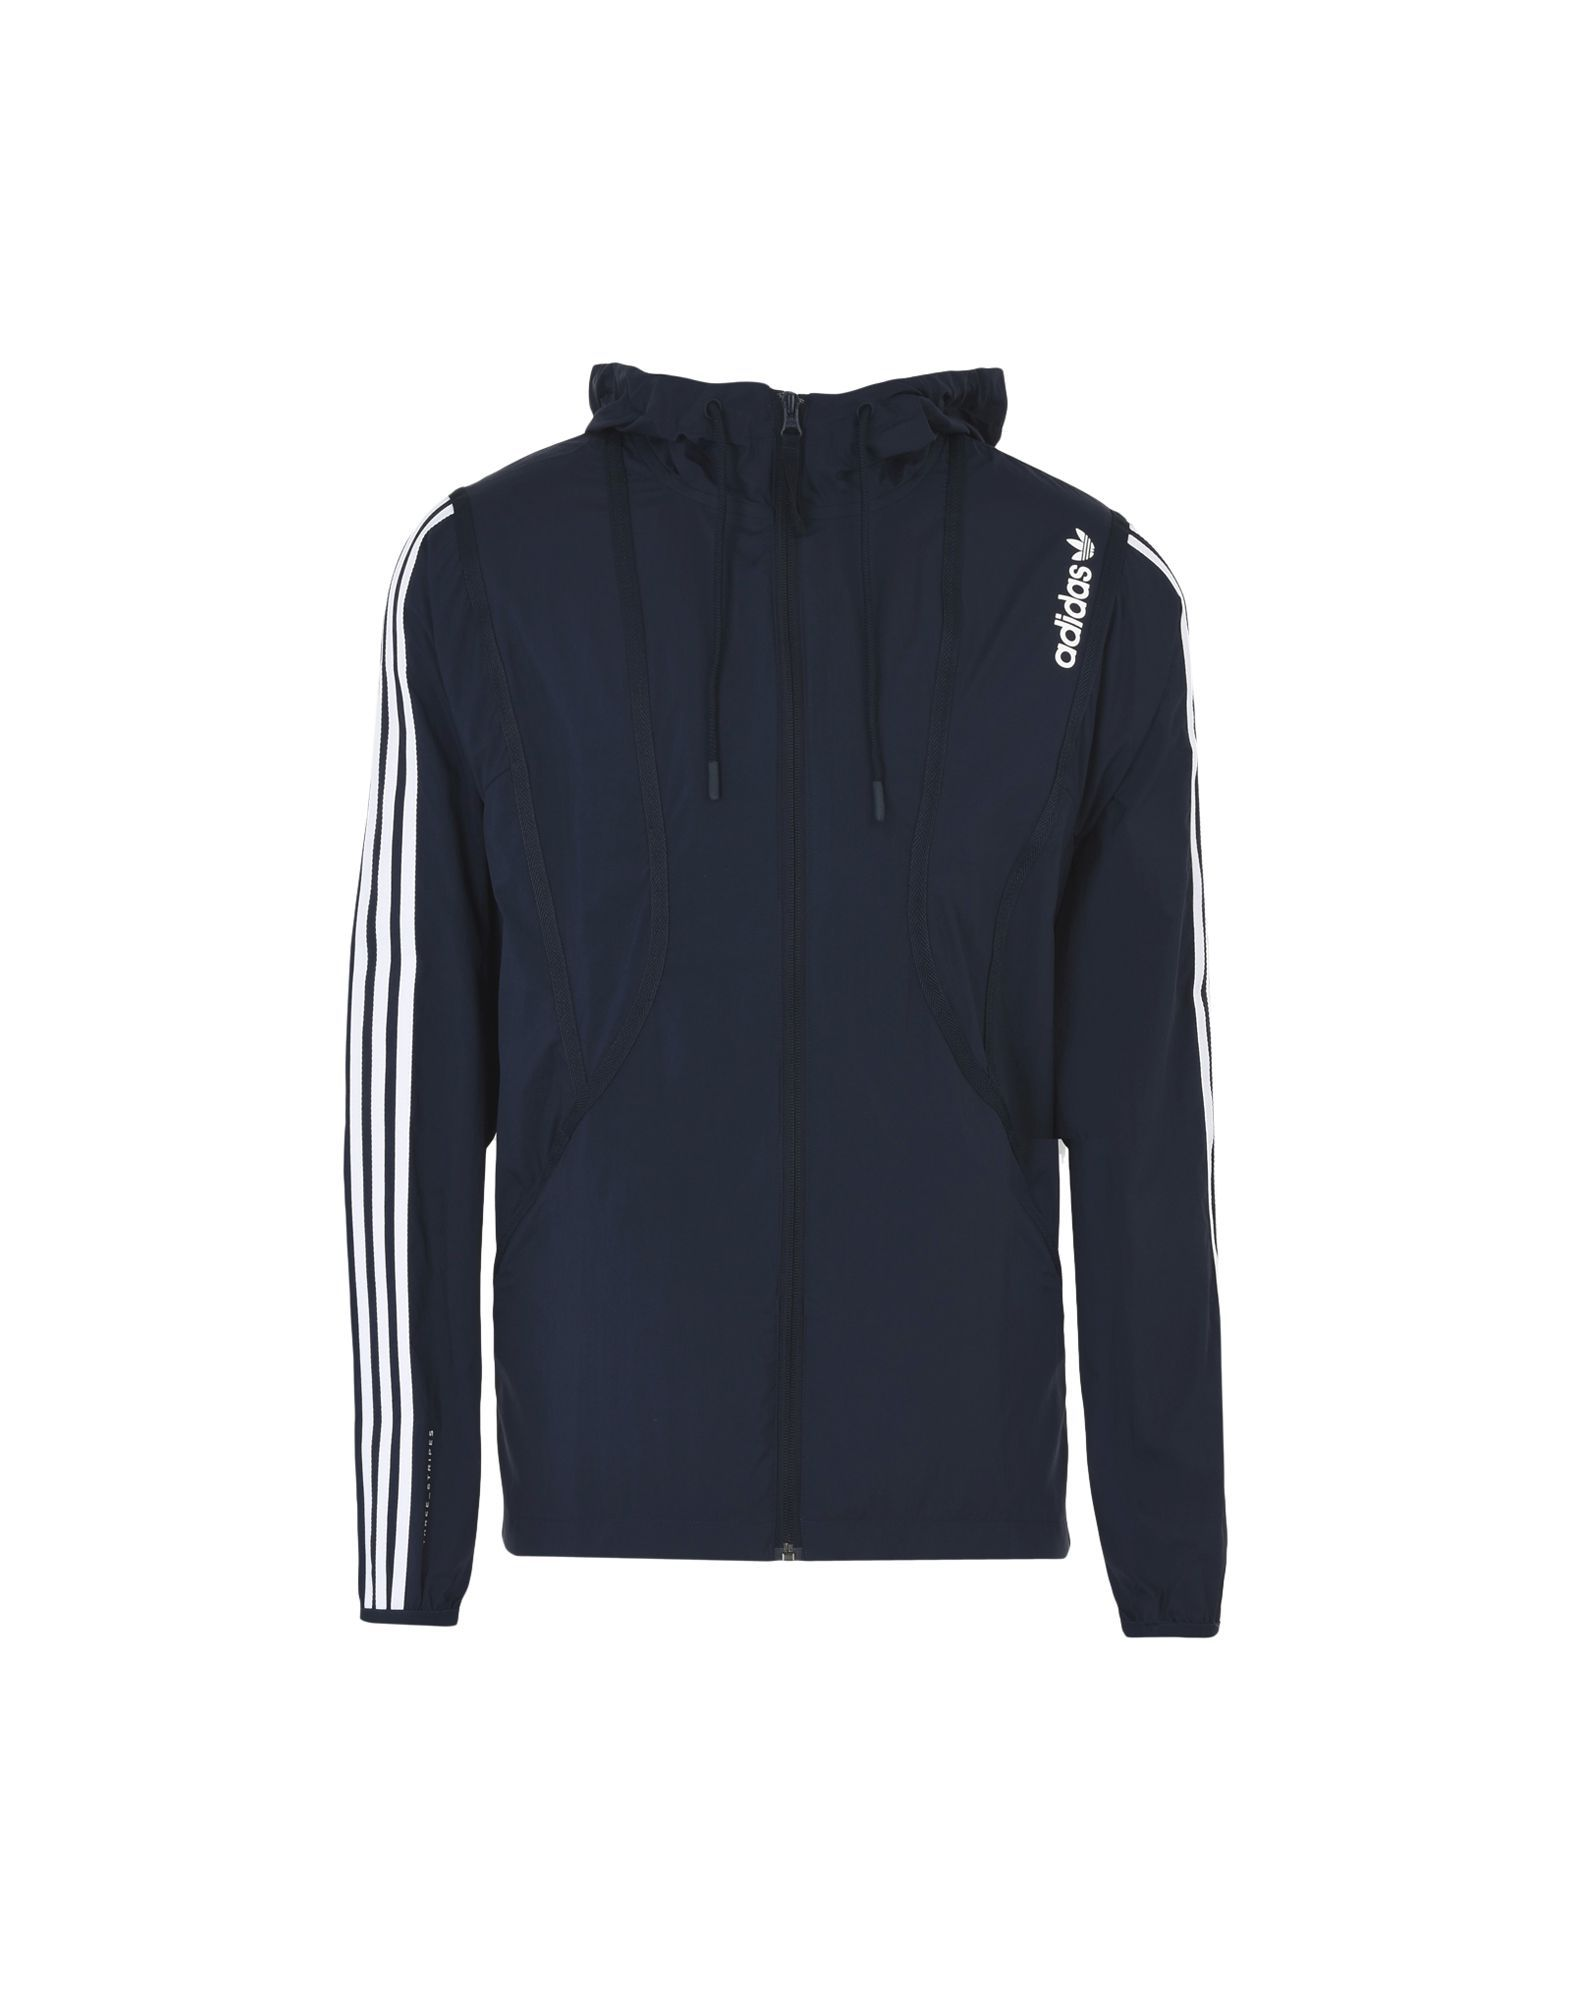 Adidas Originals Dark Blue Jacket